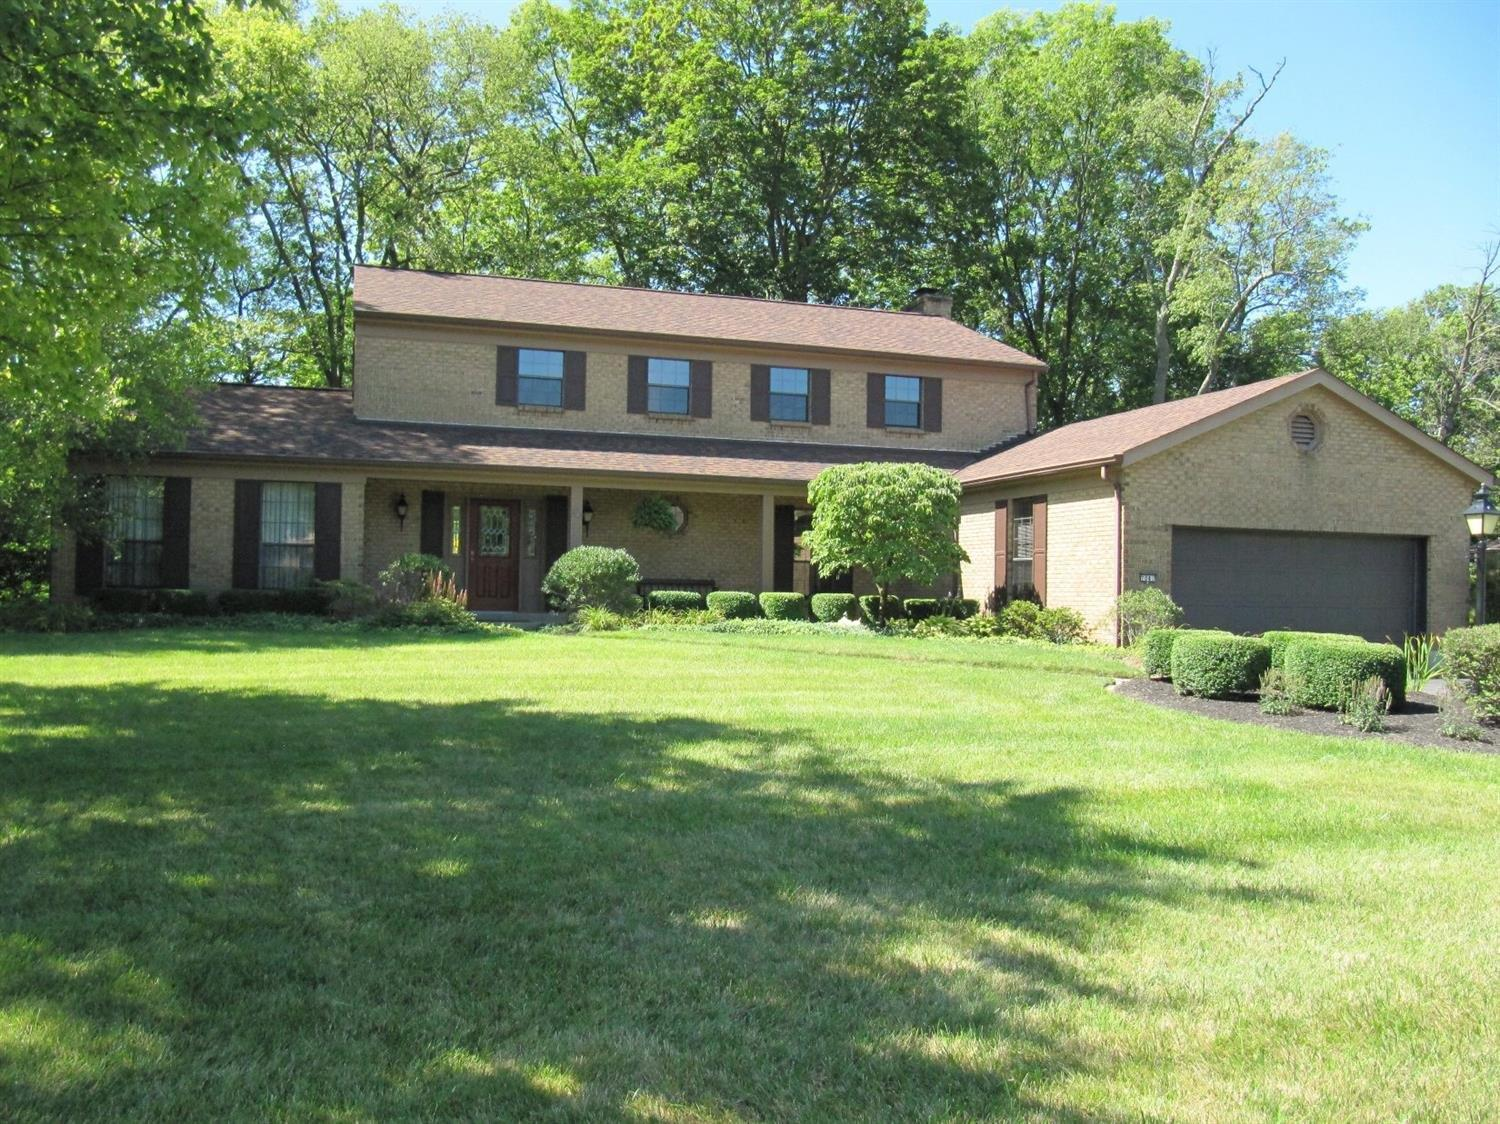 7041 Willowood Dr West Chester - East, OH